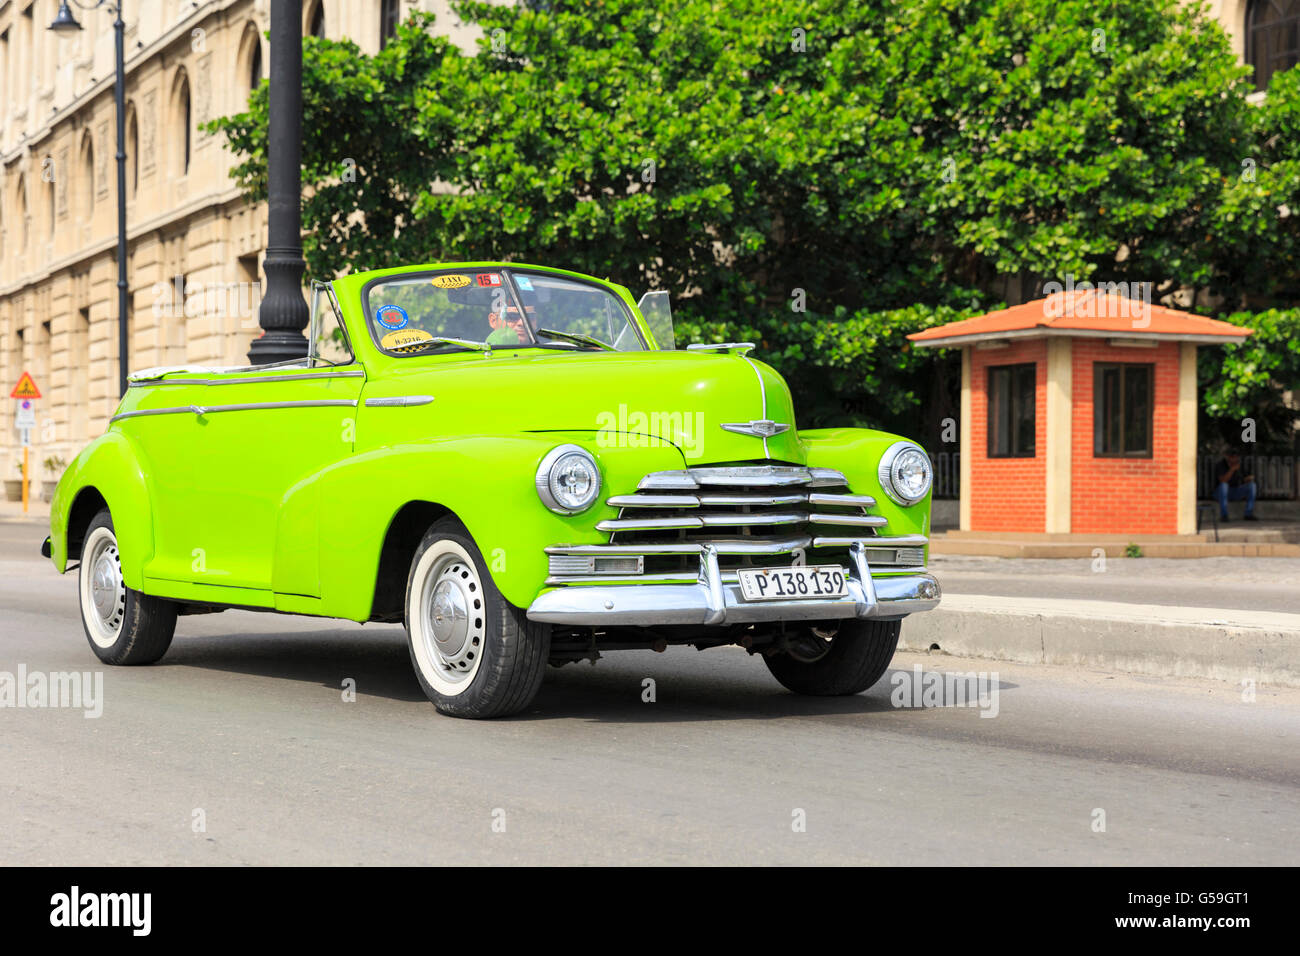 1940s lime green american chevrolet fleetmaster convertible classic stock photo royalty free. Black Bedroom Furniture Sets. Home Design Ideas